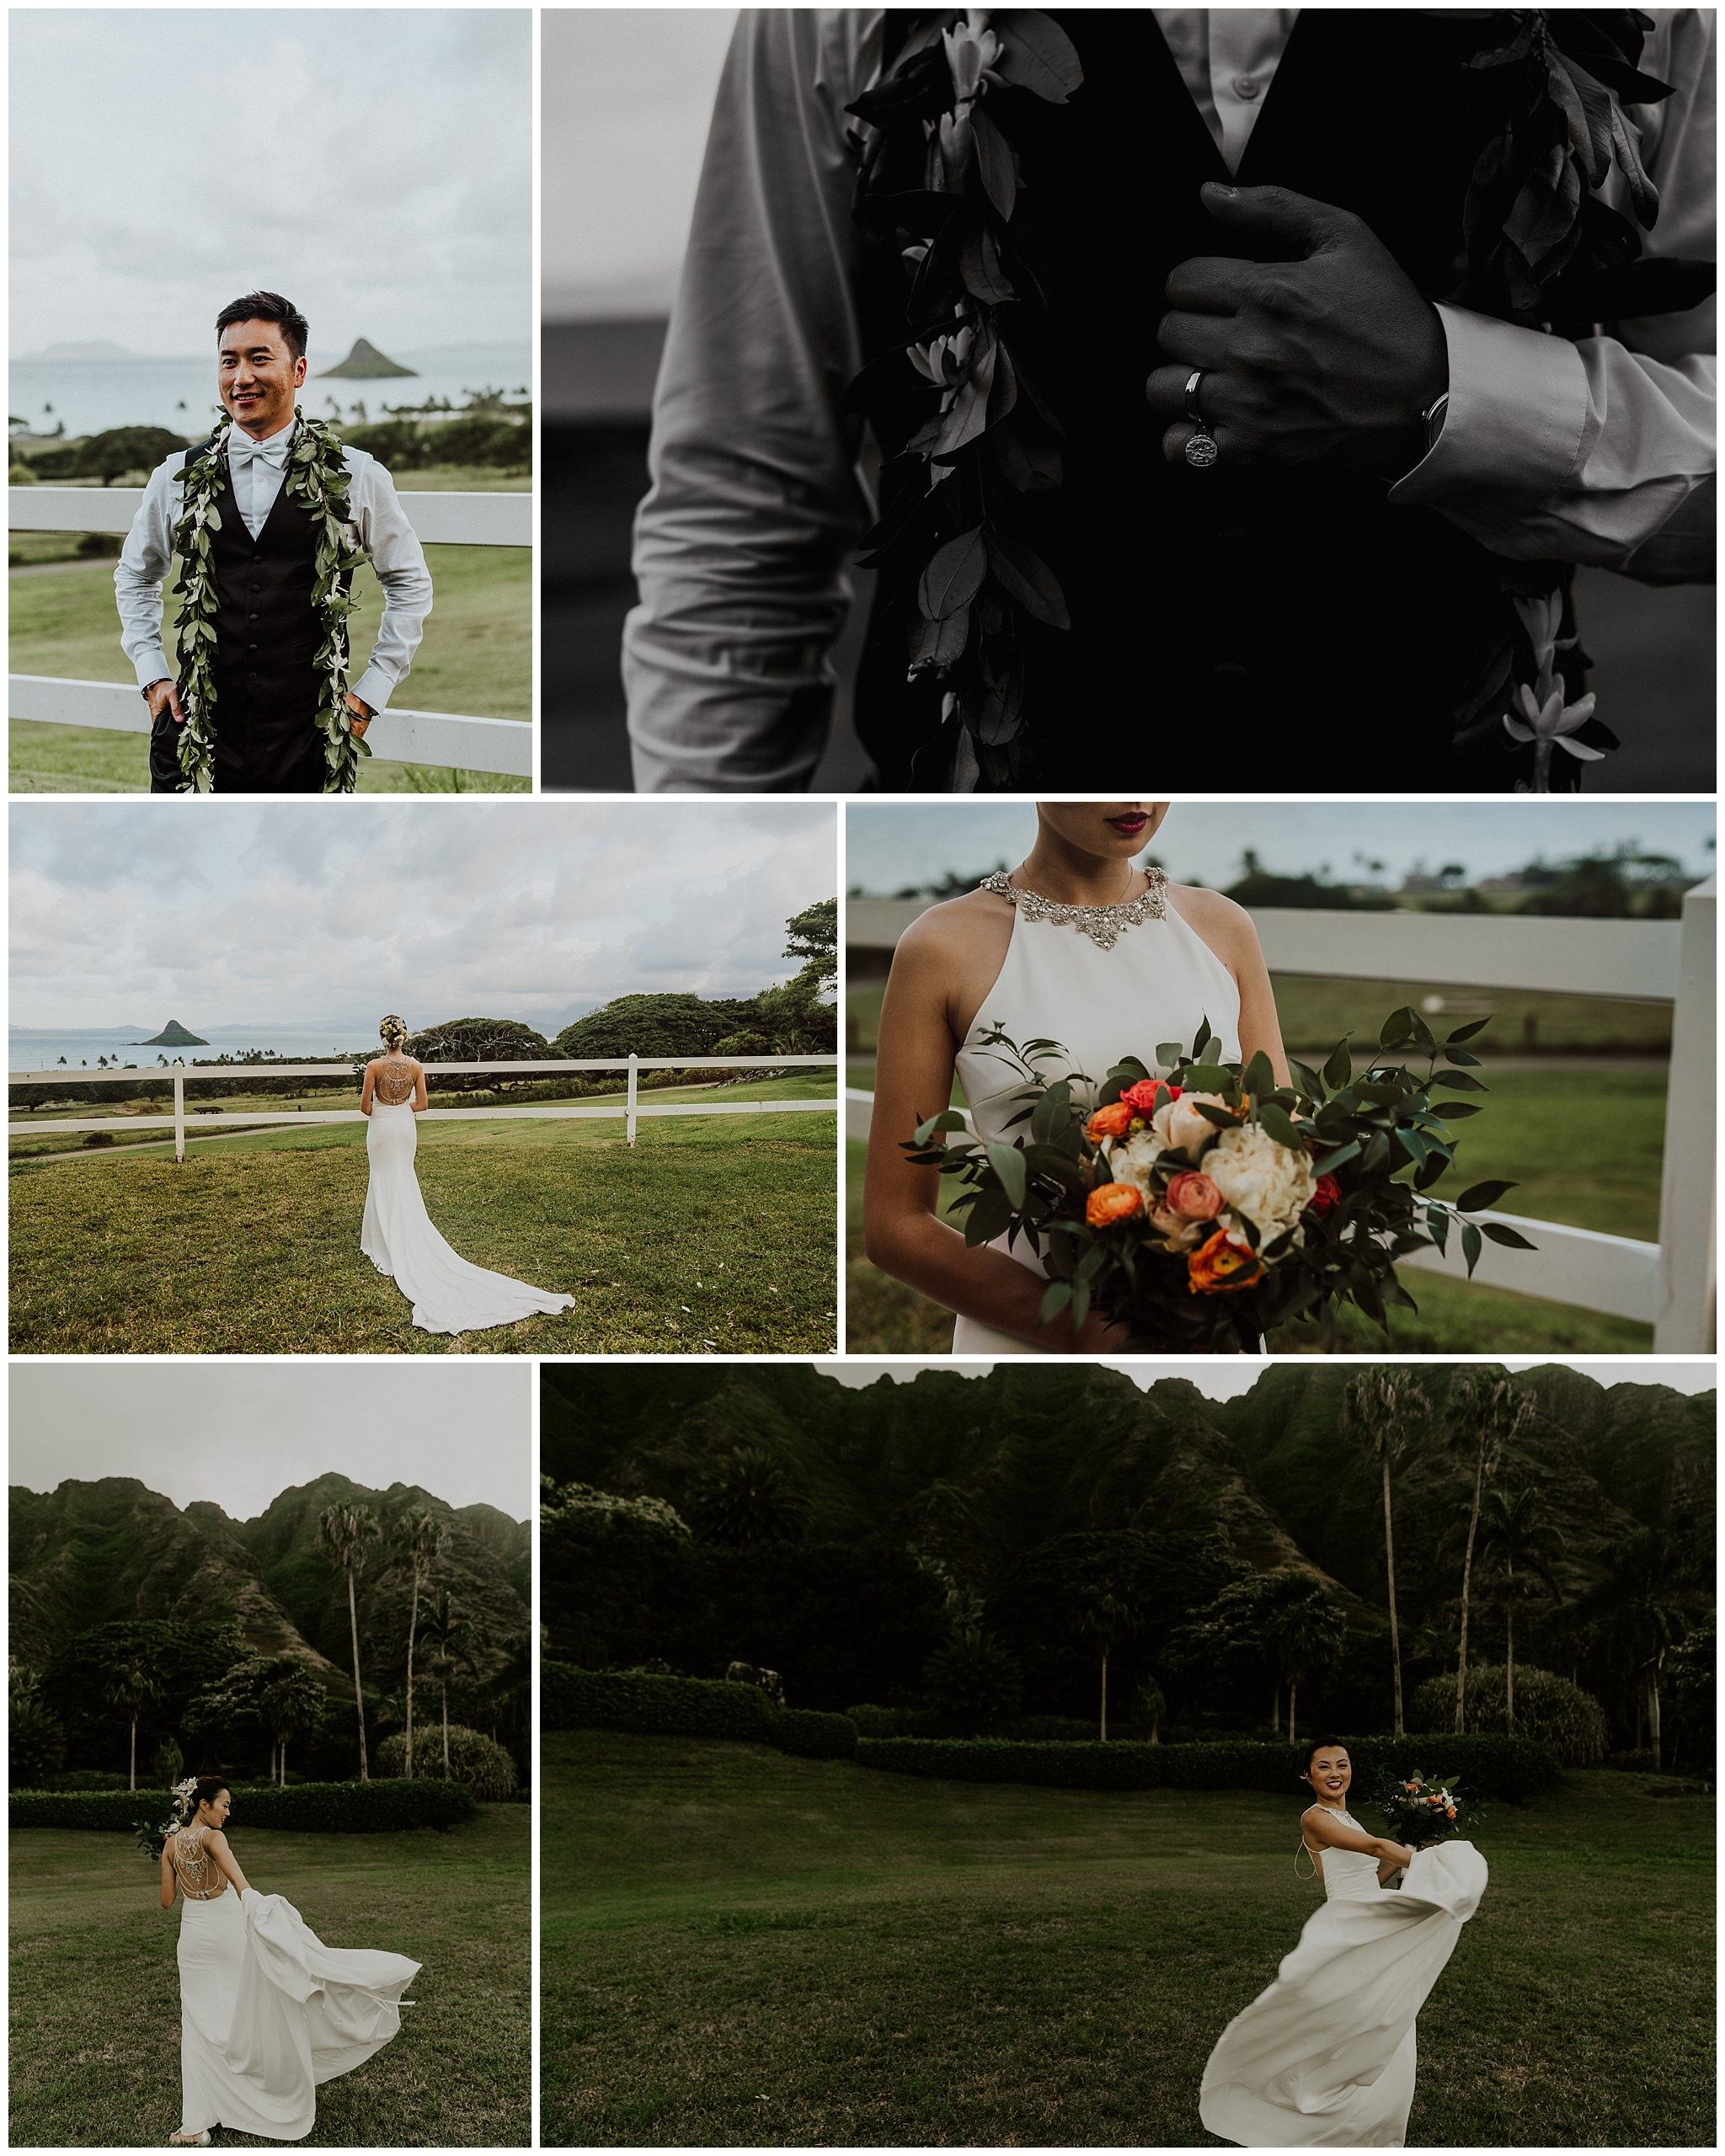 kualoa_ranch_wedding5.jpg